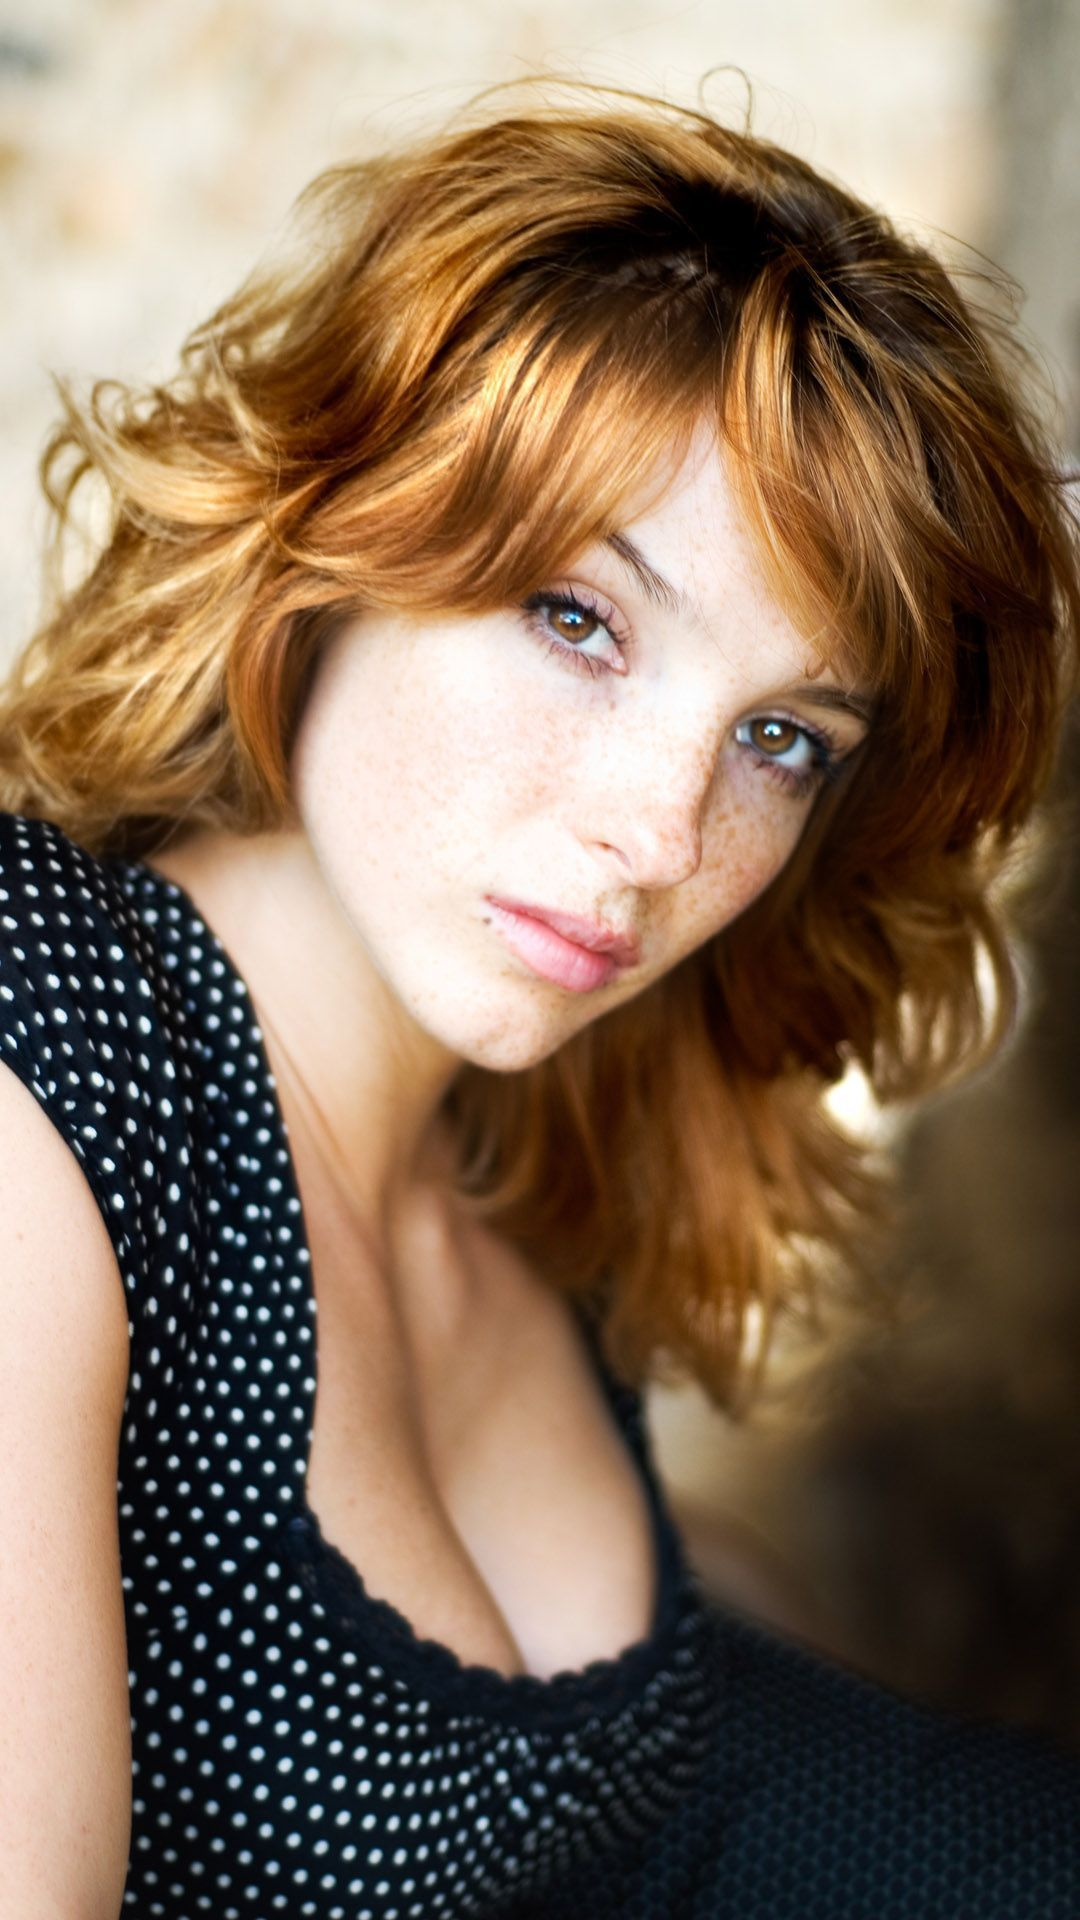 Vica Kerekes High Quality Wallpapers For Iphone